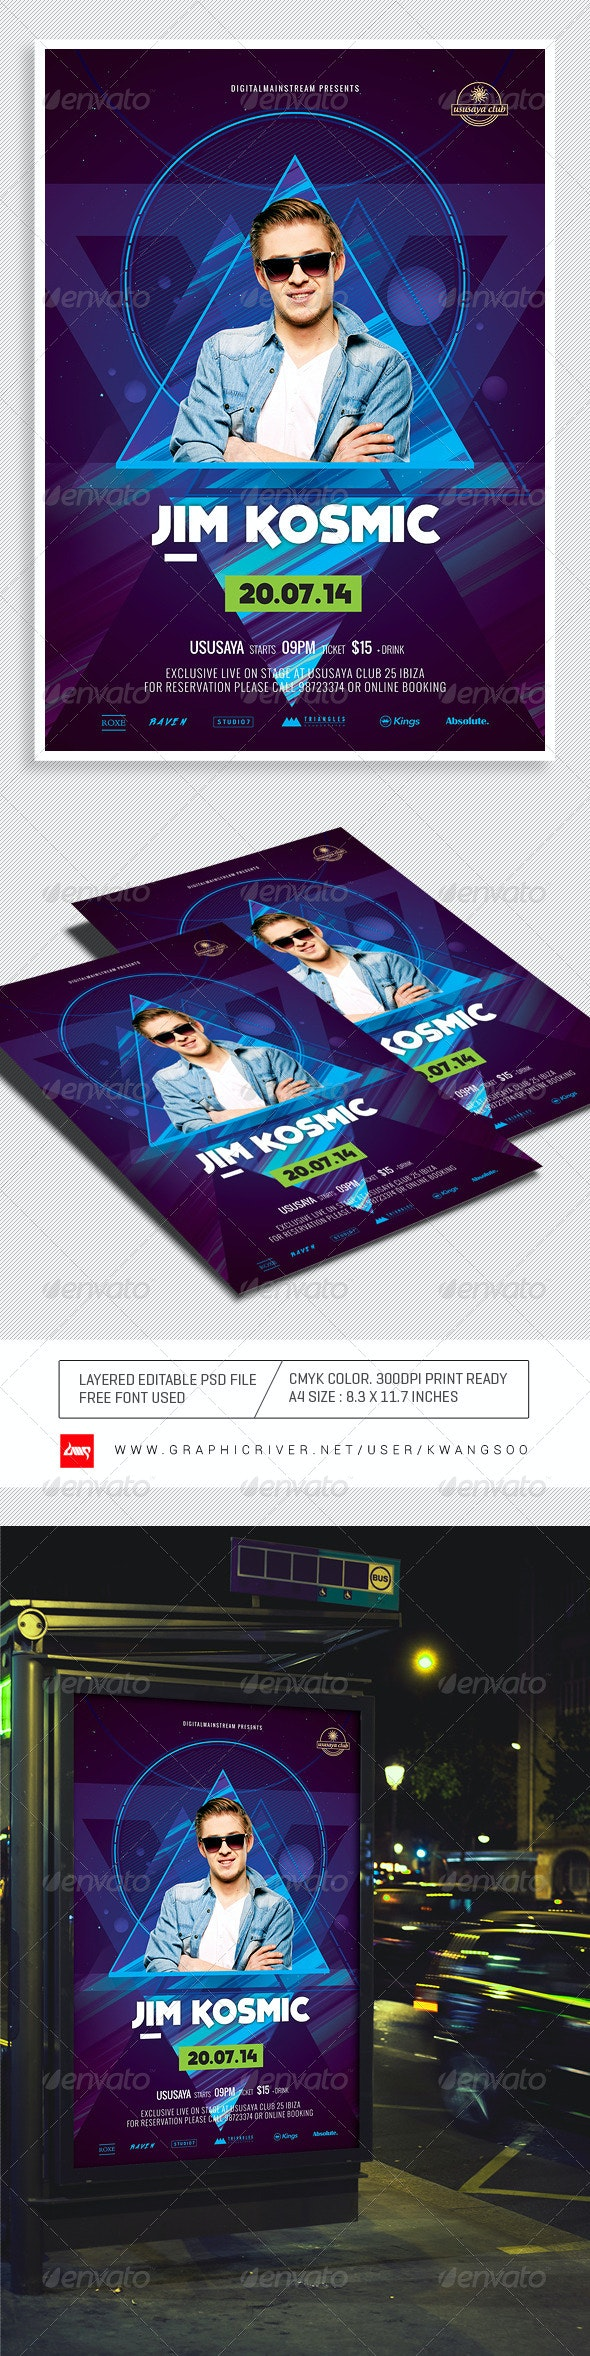 Special Dj Electronic Dance Music Flyer / Poster 3 - Clubs & Parties Events